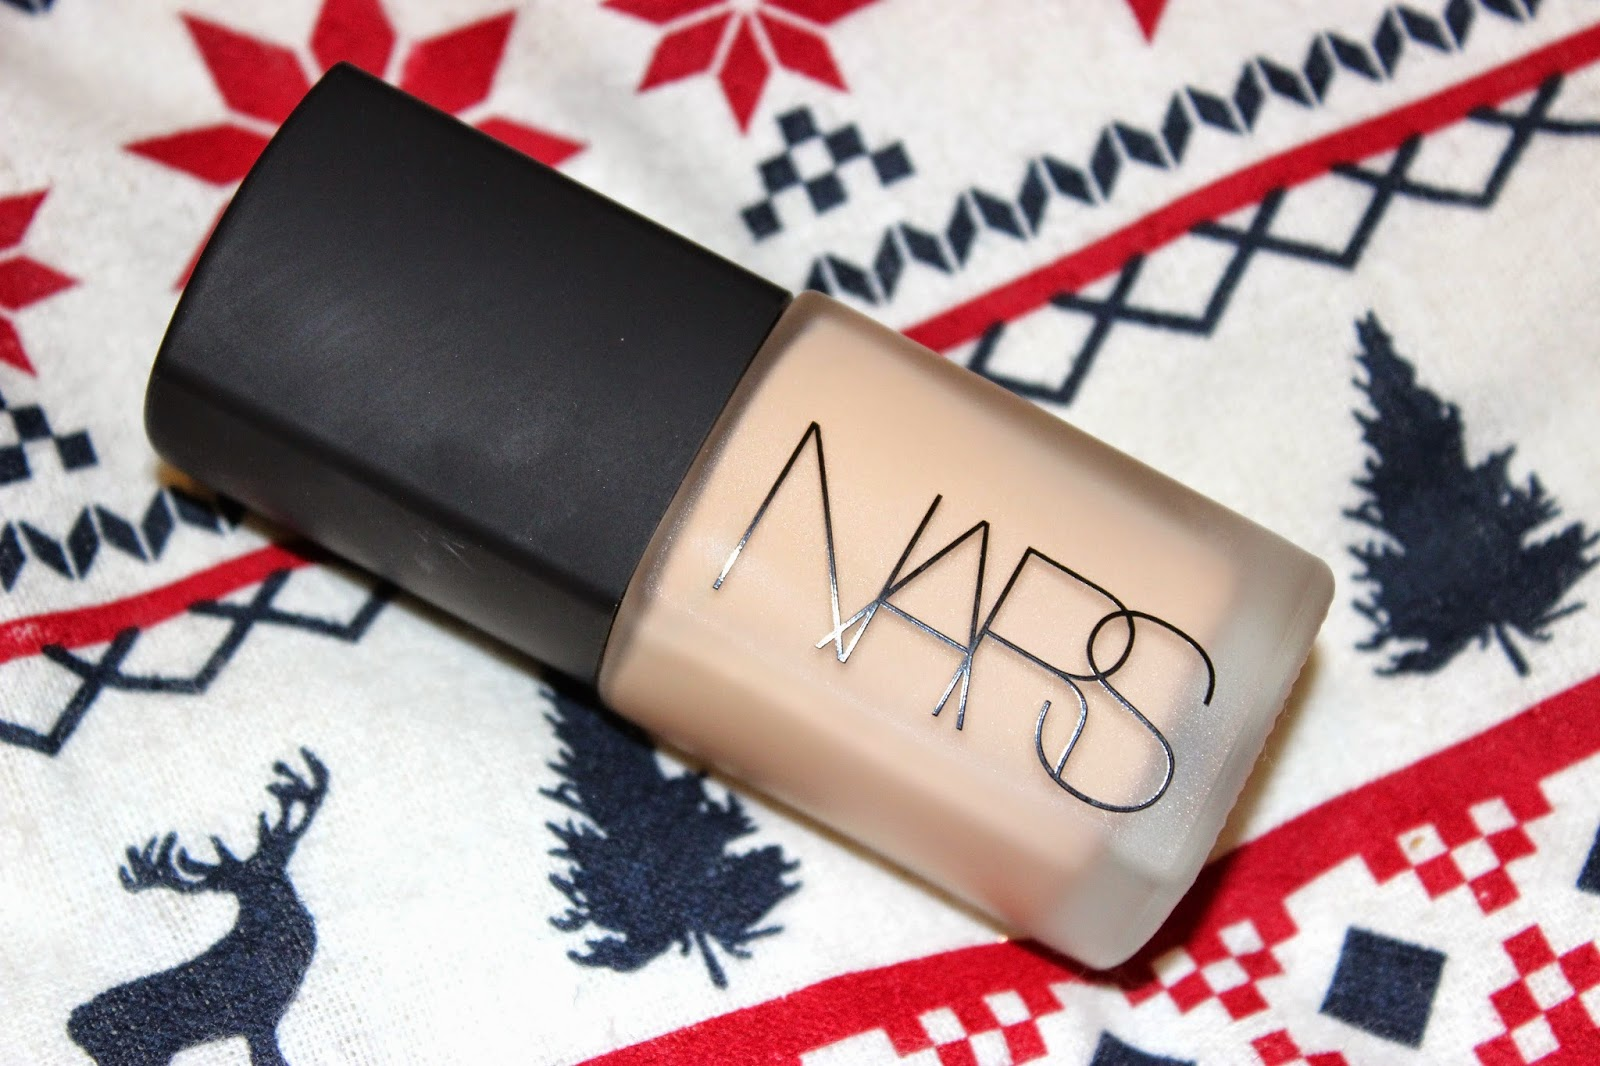 Naz Sheer Matte Foundation Review